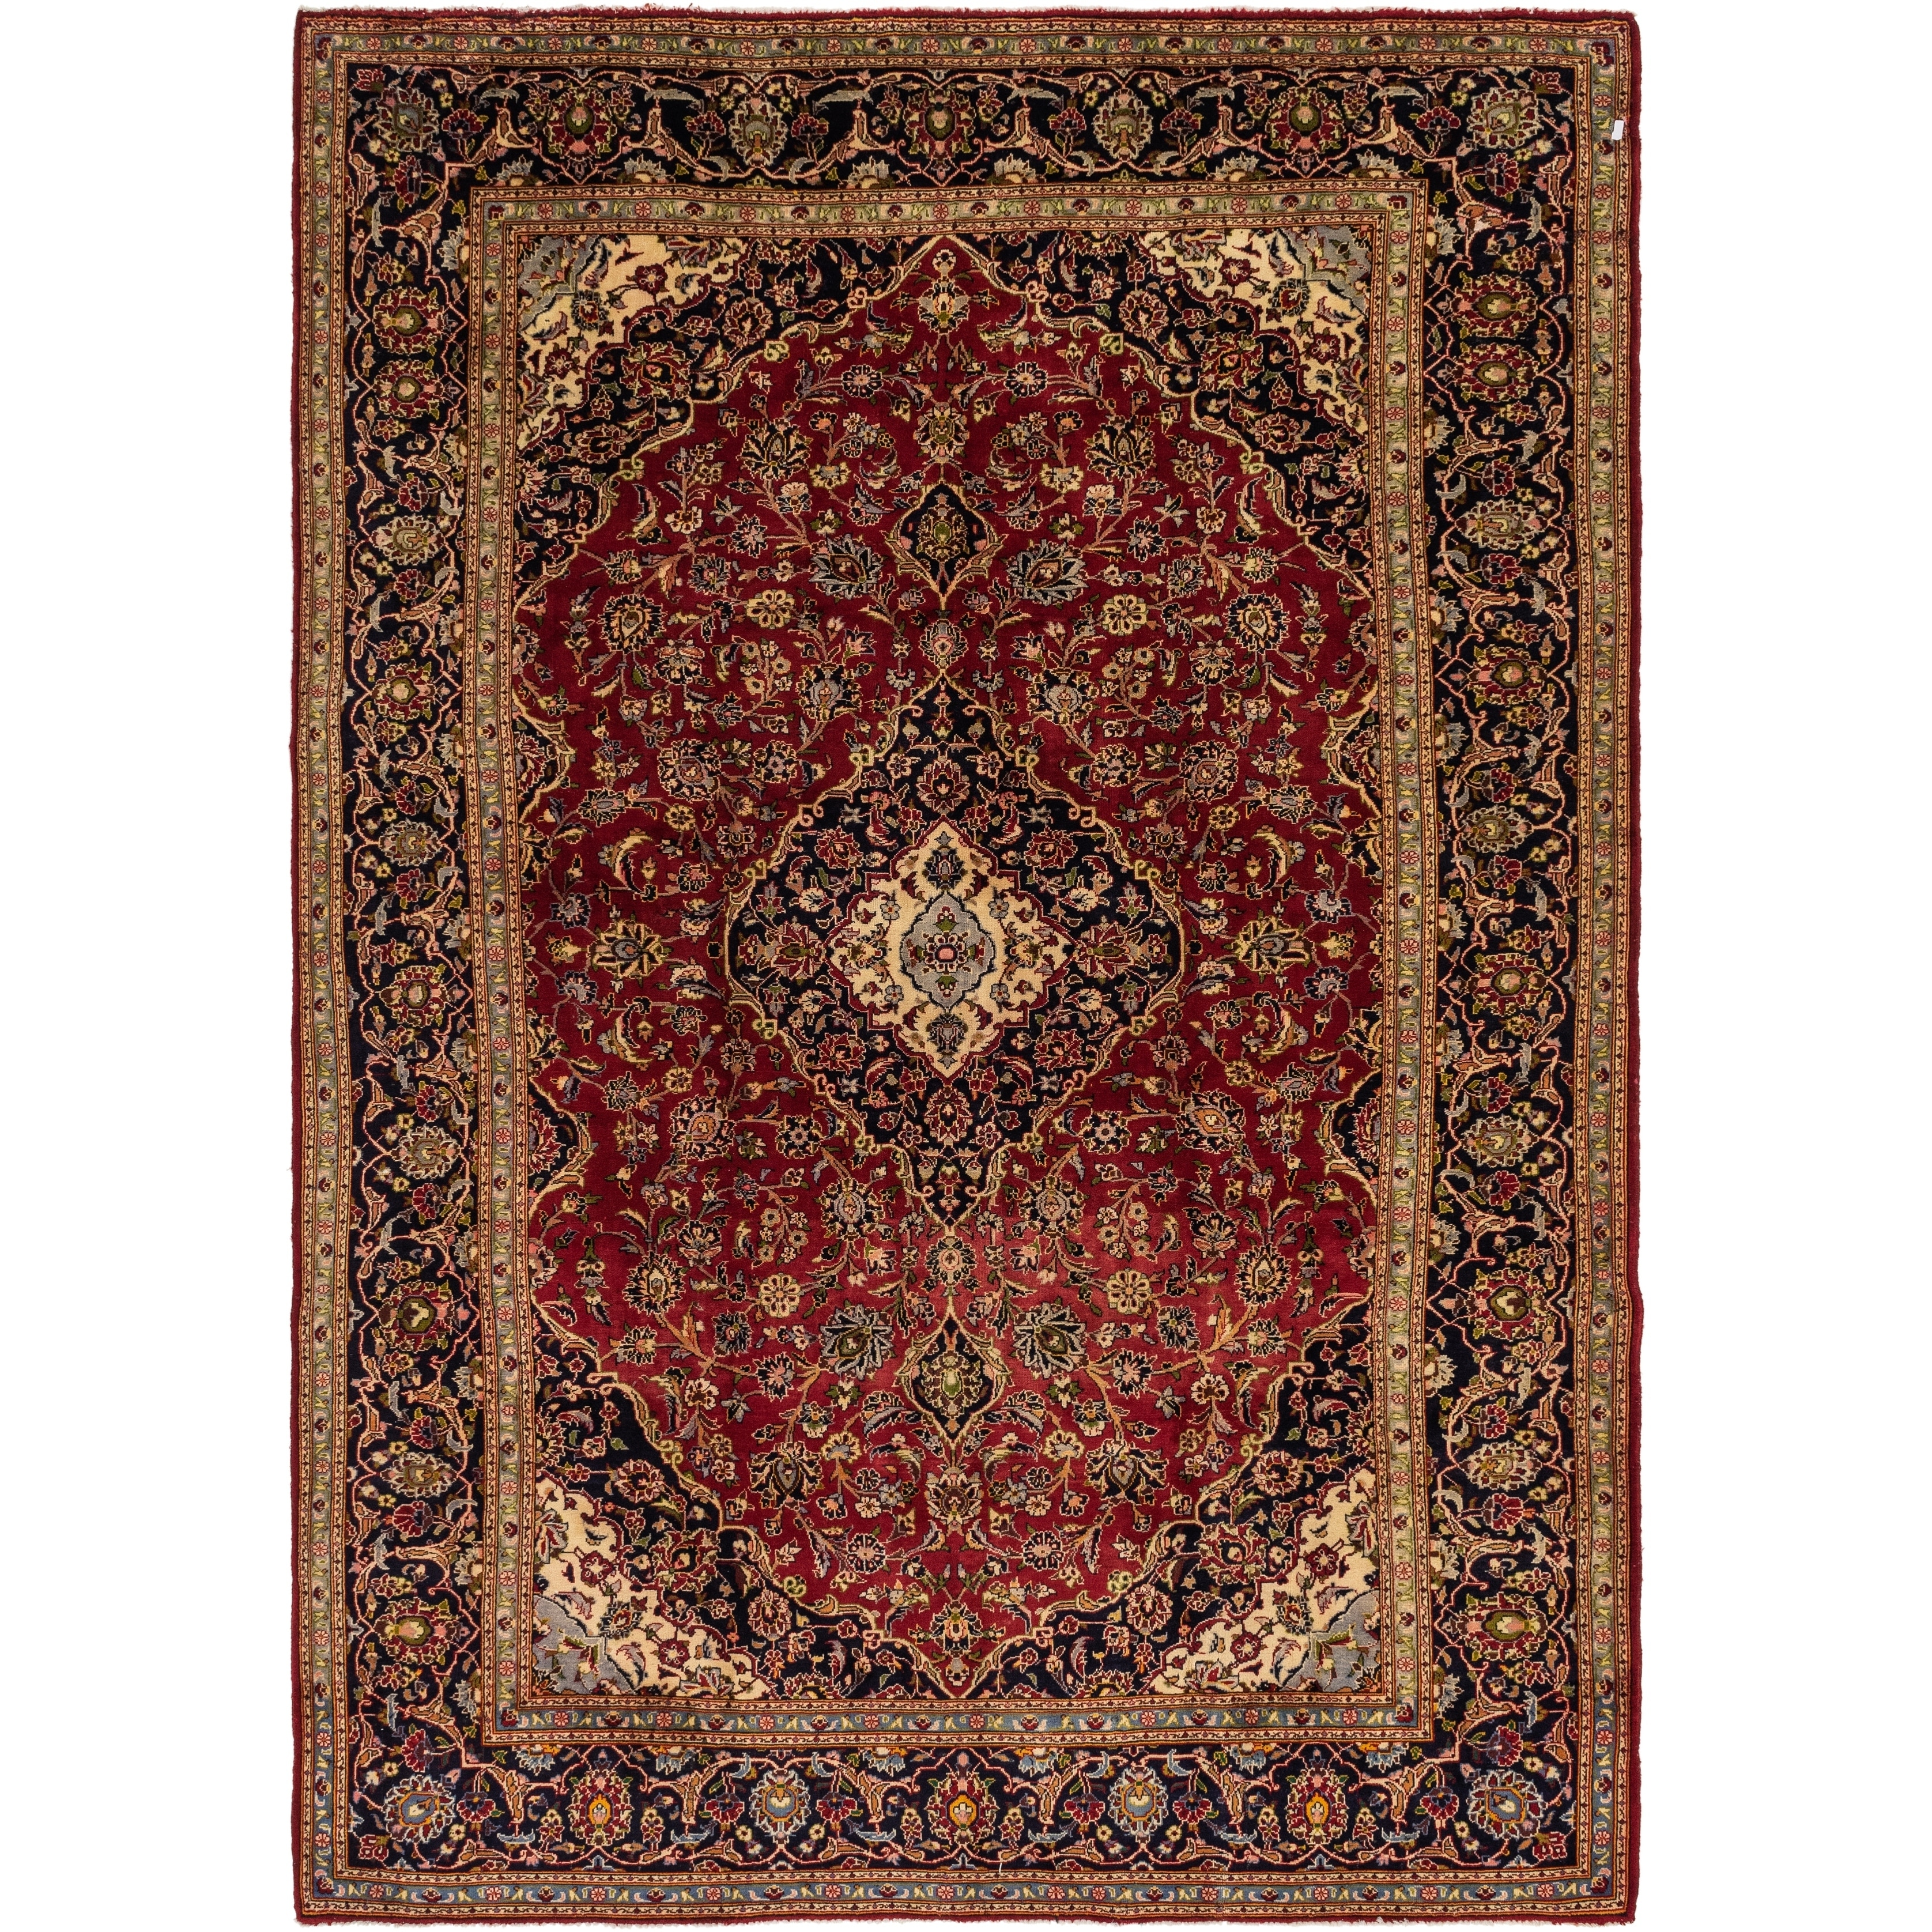 Hand Knotted Kashan Semi Antique Wool Area Rug - 9 8 x 14 (Red - 9 8 x 14)